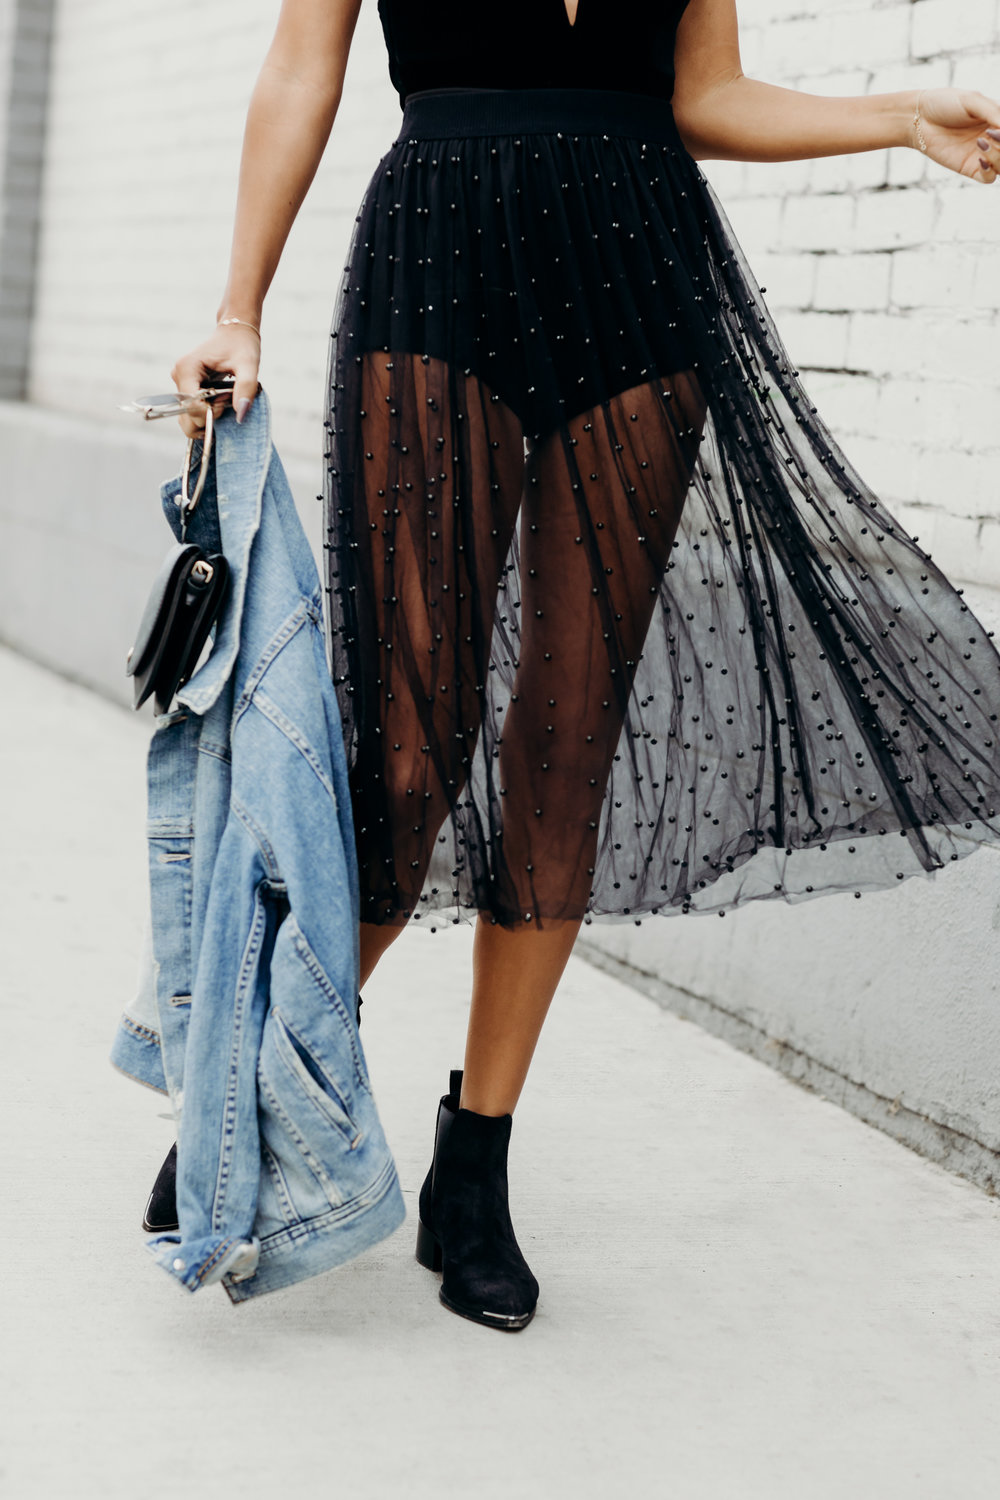 sheert skirt outfit, velvet bodysuit look, edgy holiday outfit ideas